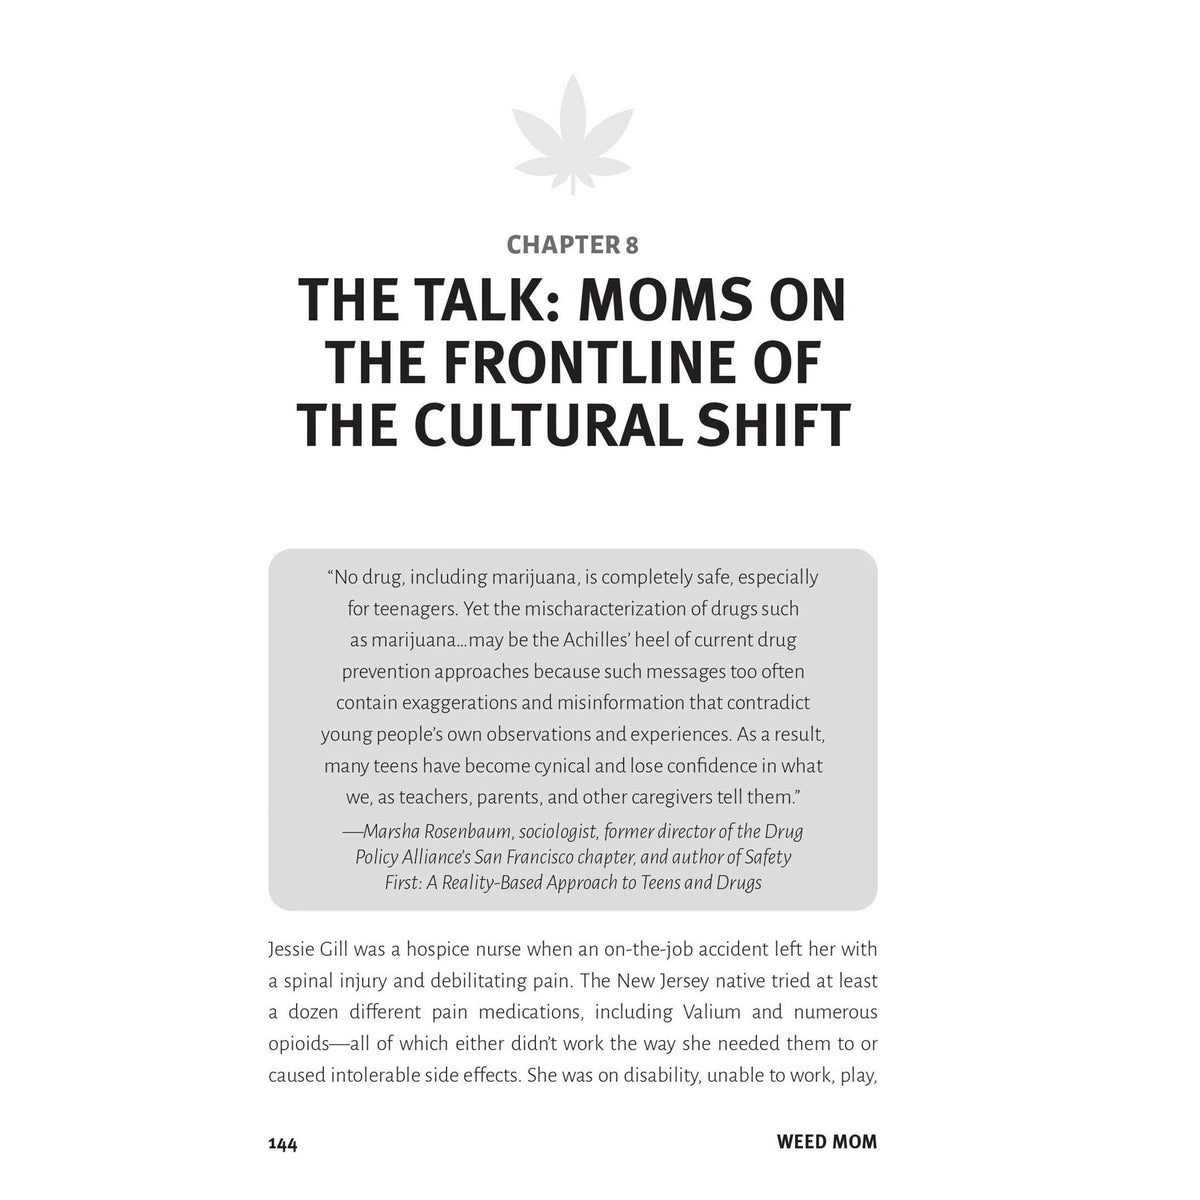 Weed Mom Book - The Canna-Curious Woman's Guide